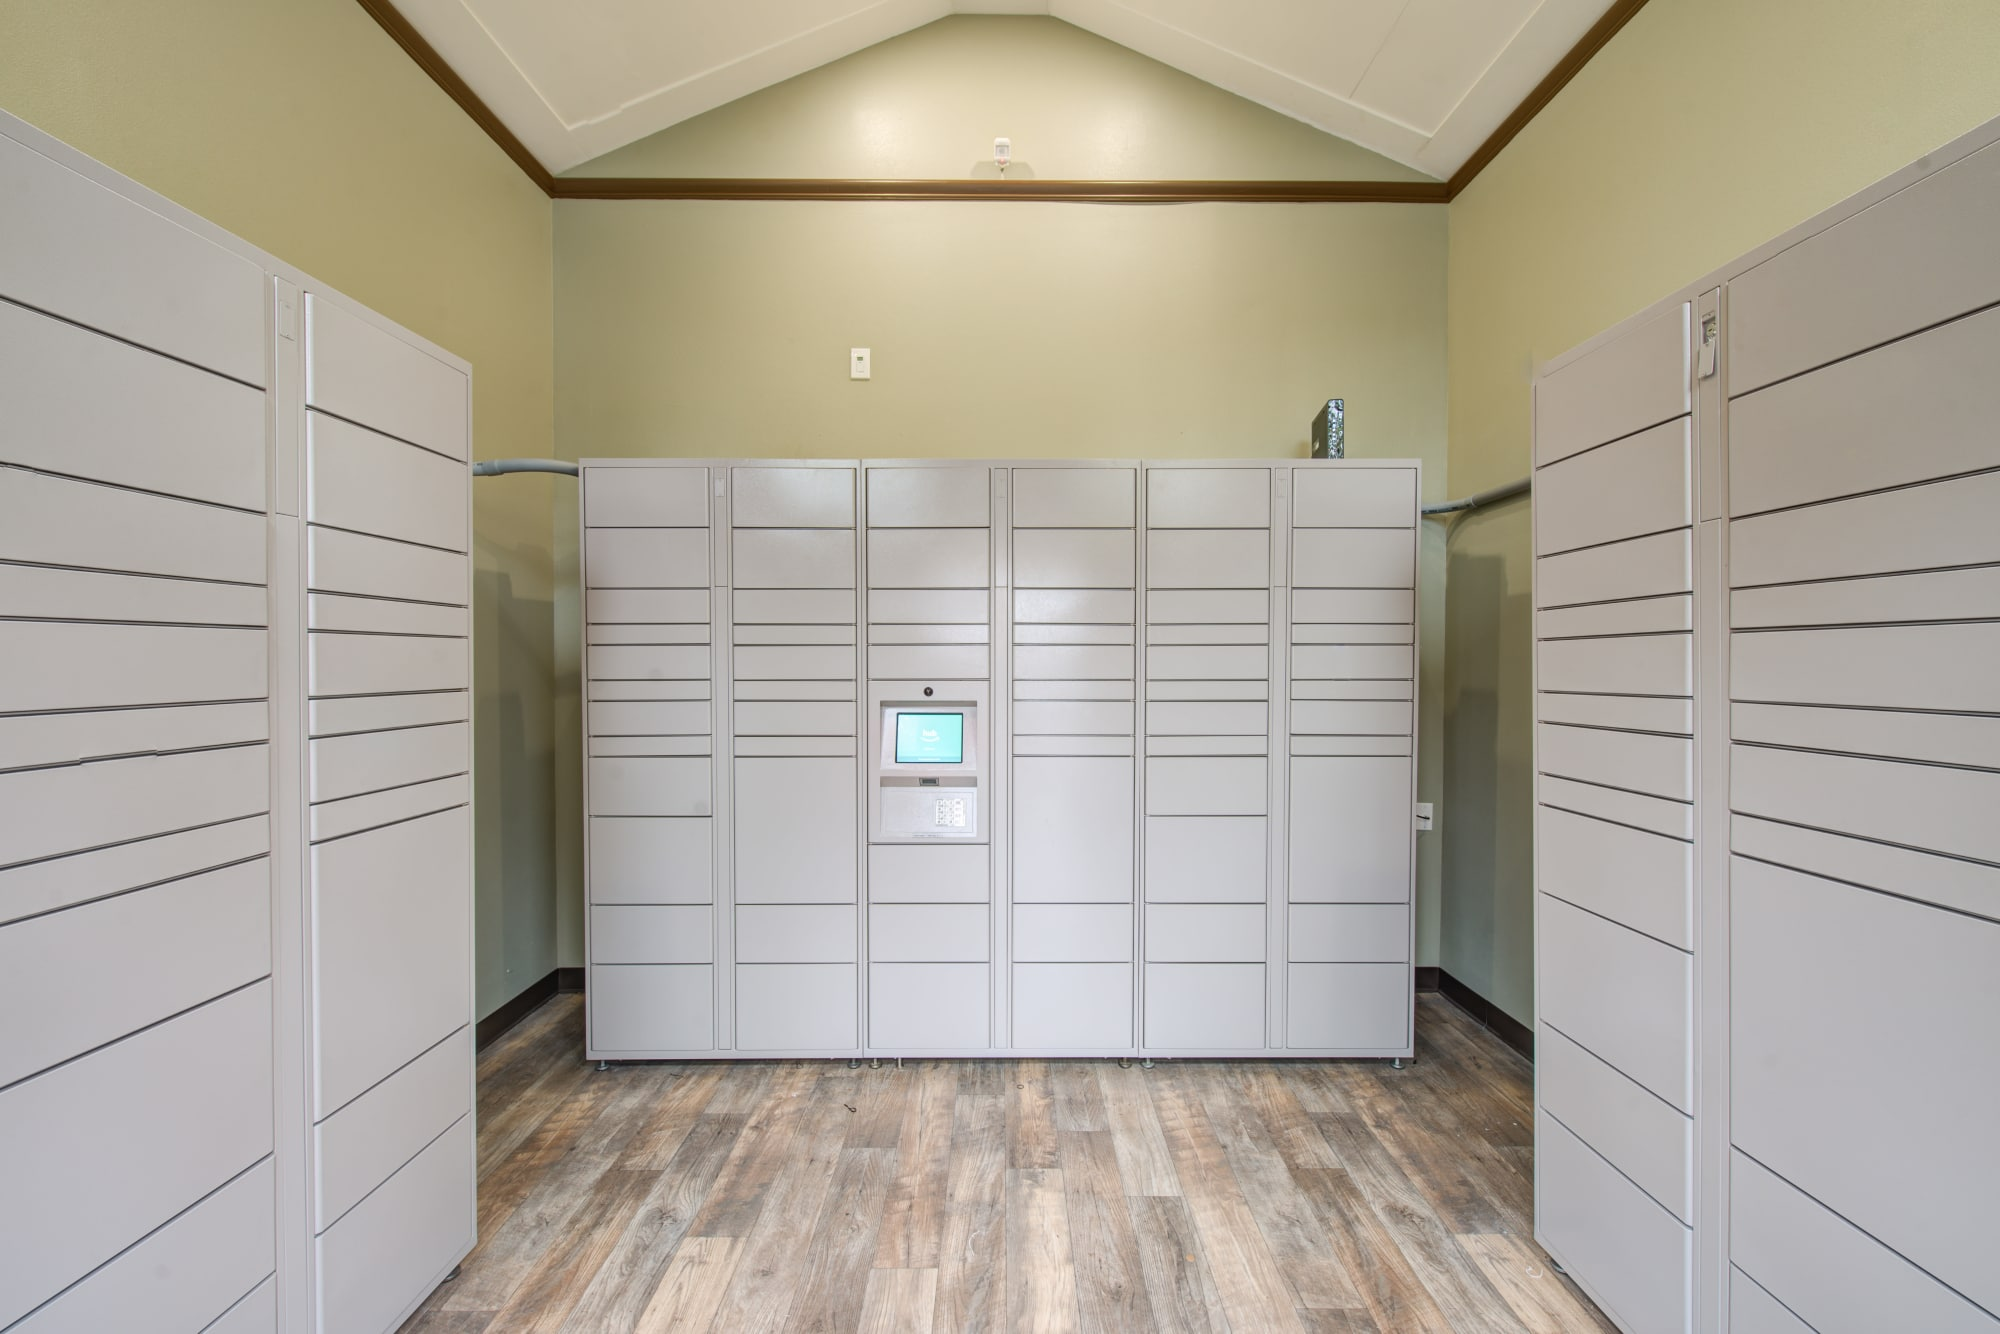 24-Hour Package Locker at HighGrove Apartments